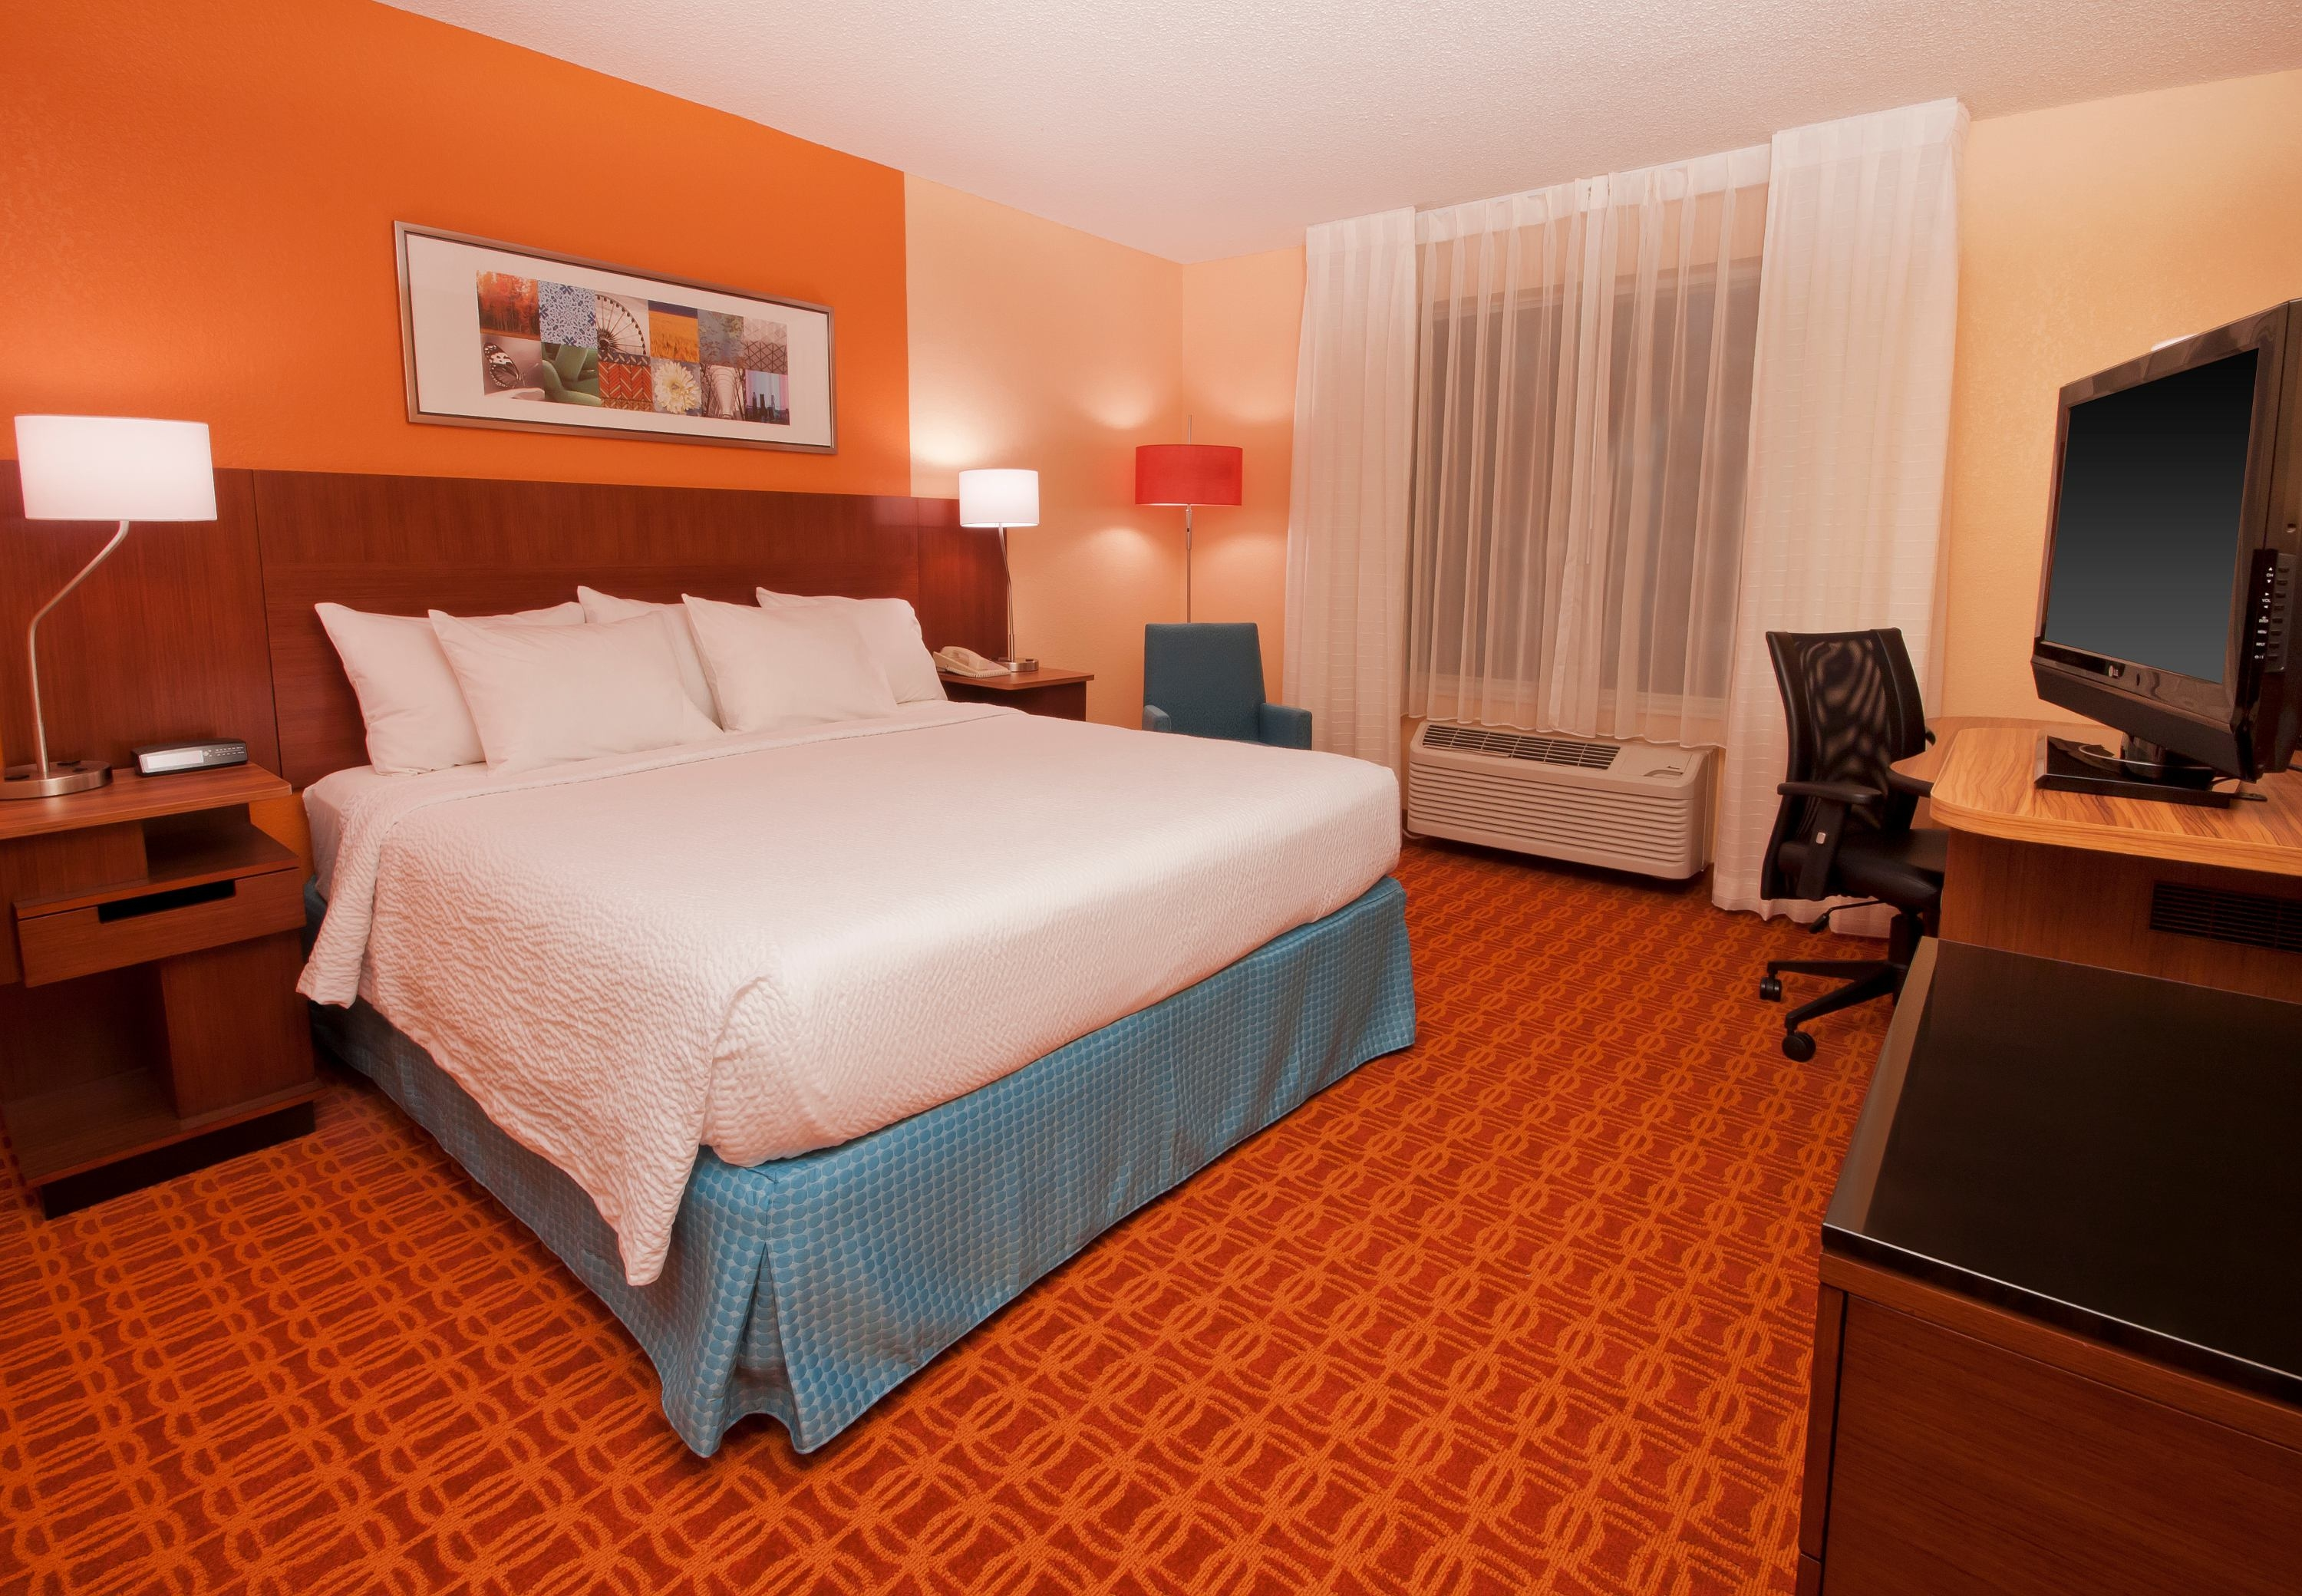 Fairfield Inn & Suites by Marriott Fort Worth/Fossil Creek image 11